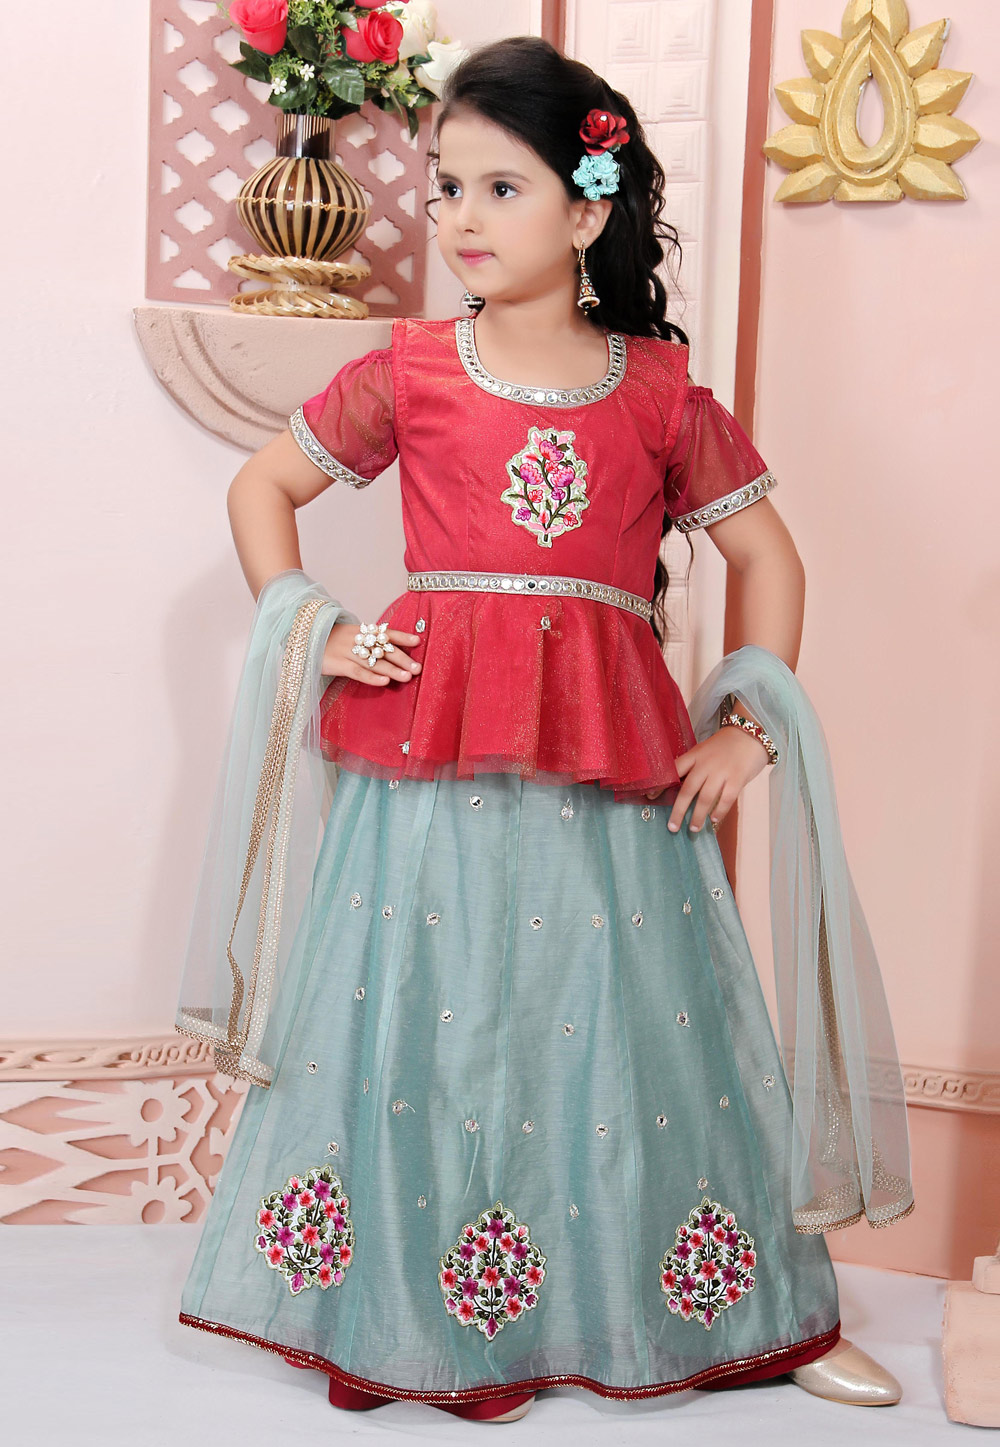 Sea Green Chanderi Silk Readymade Kids Skirt and Peplum 198379